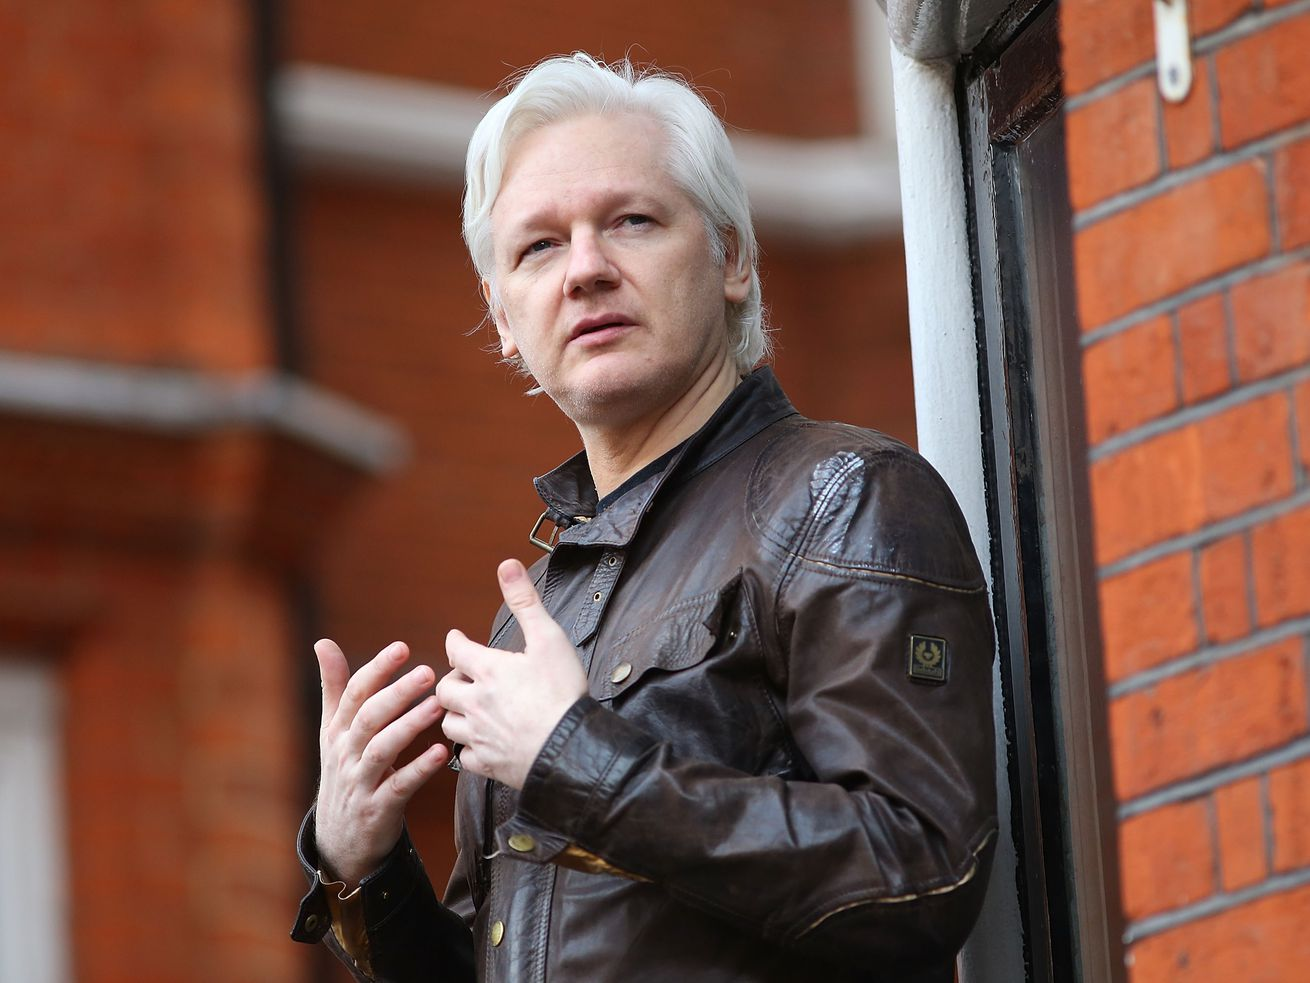 WikiLeaks founder Julian Assange speaks to the media from the balcony of the Embassy of Ecuador on May 19, 2017, in London, England.